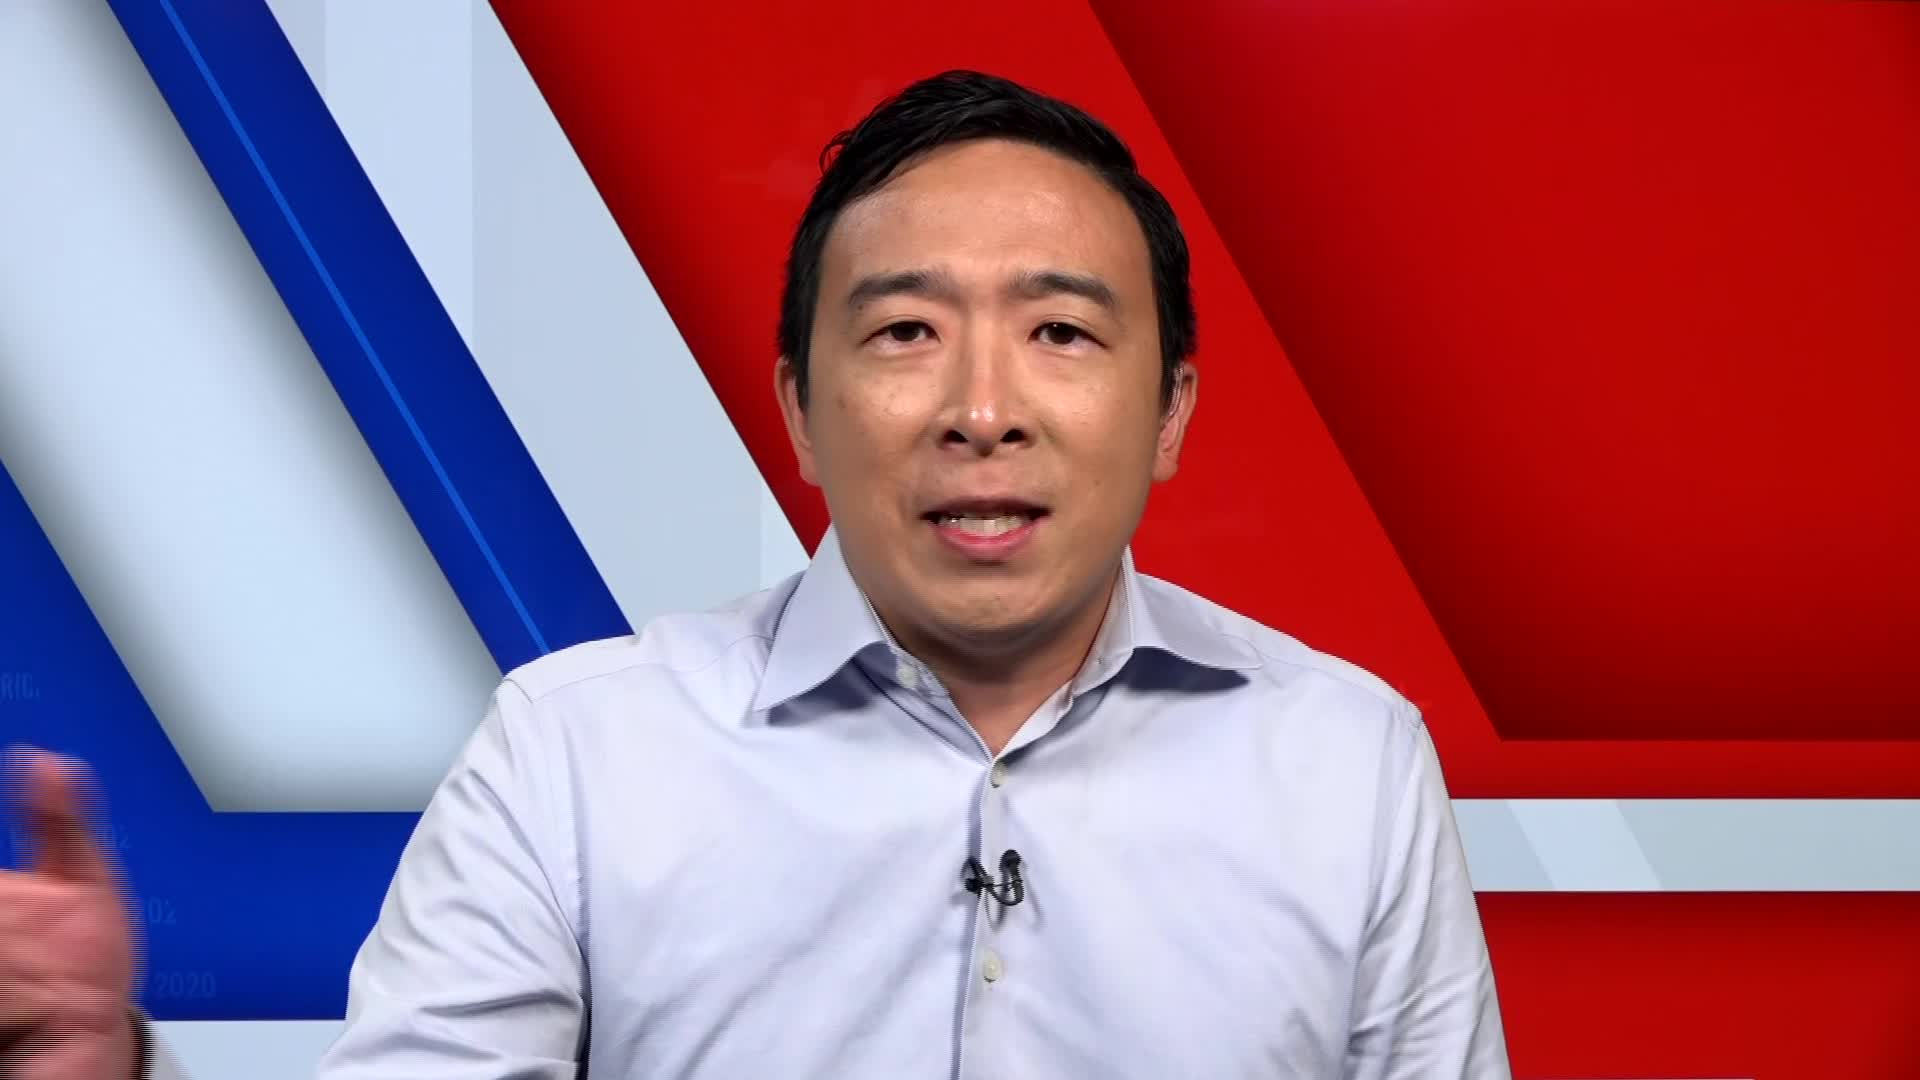 Andrew Yang announces candidacy for New York mayor with surprising endorsement